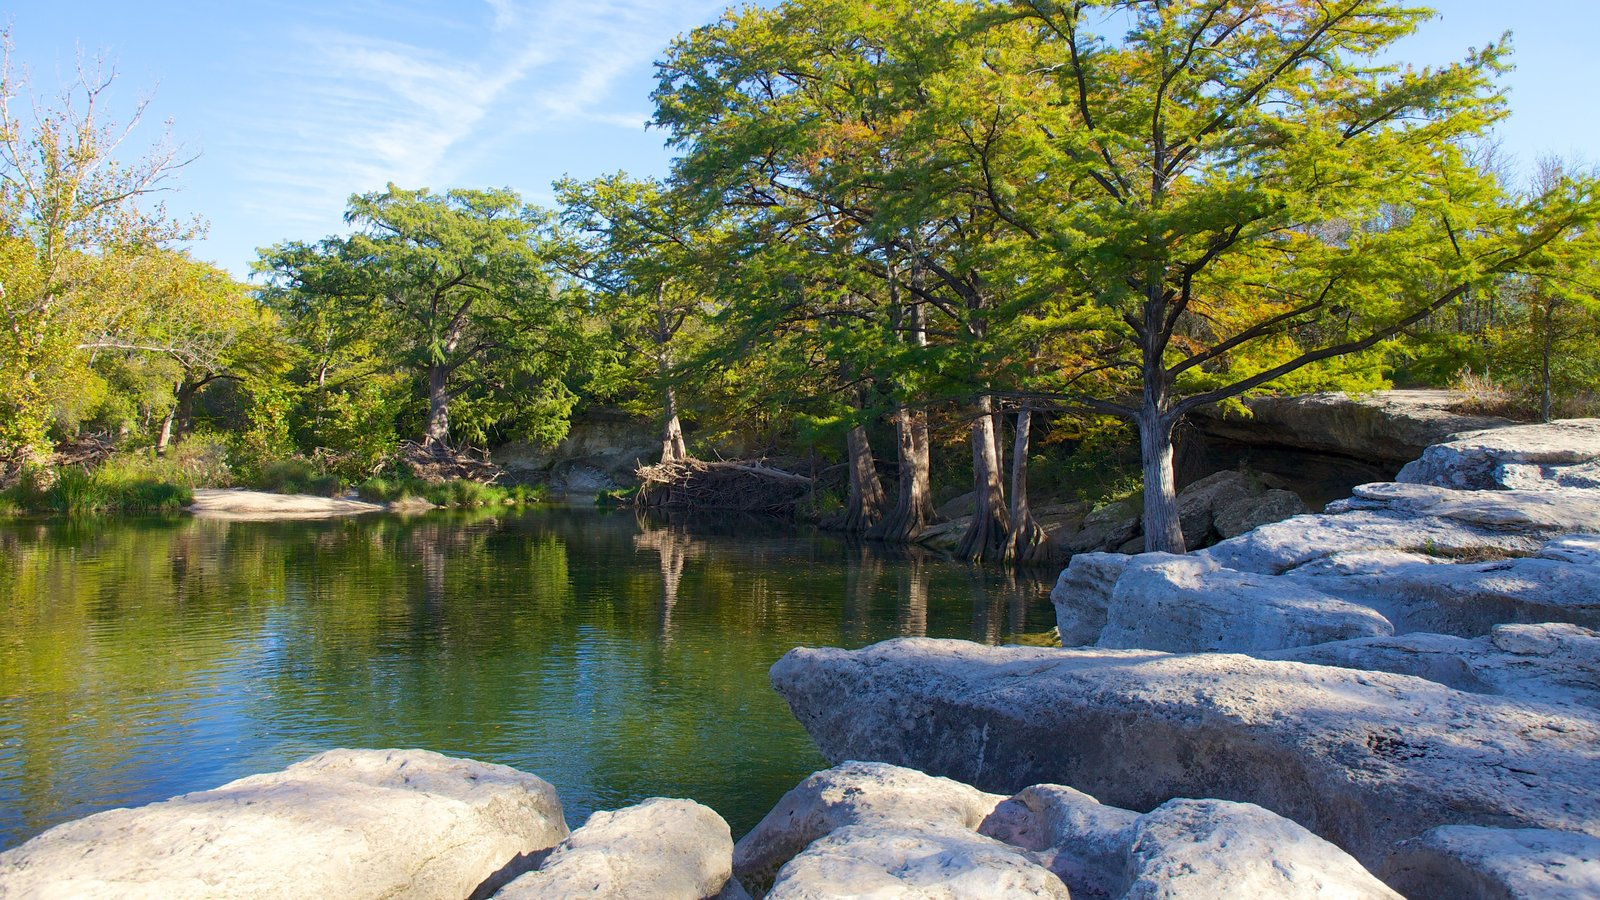 McKinney Falls State Park which includes forest scenes, a park and landscape views